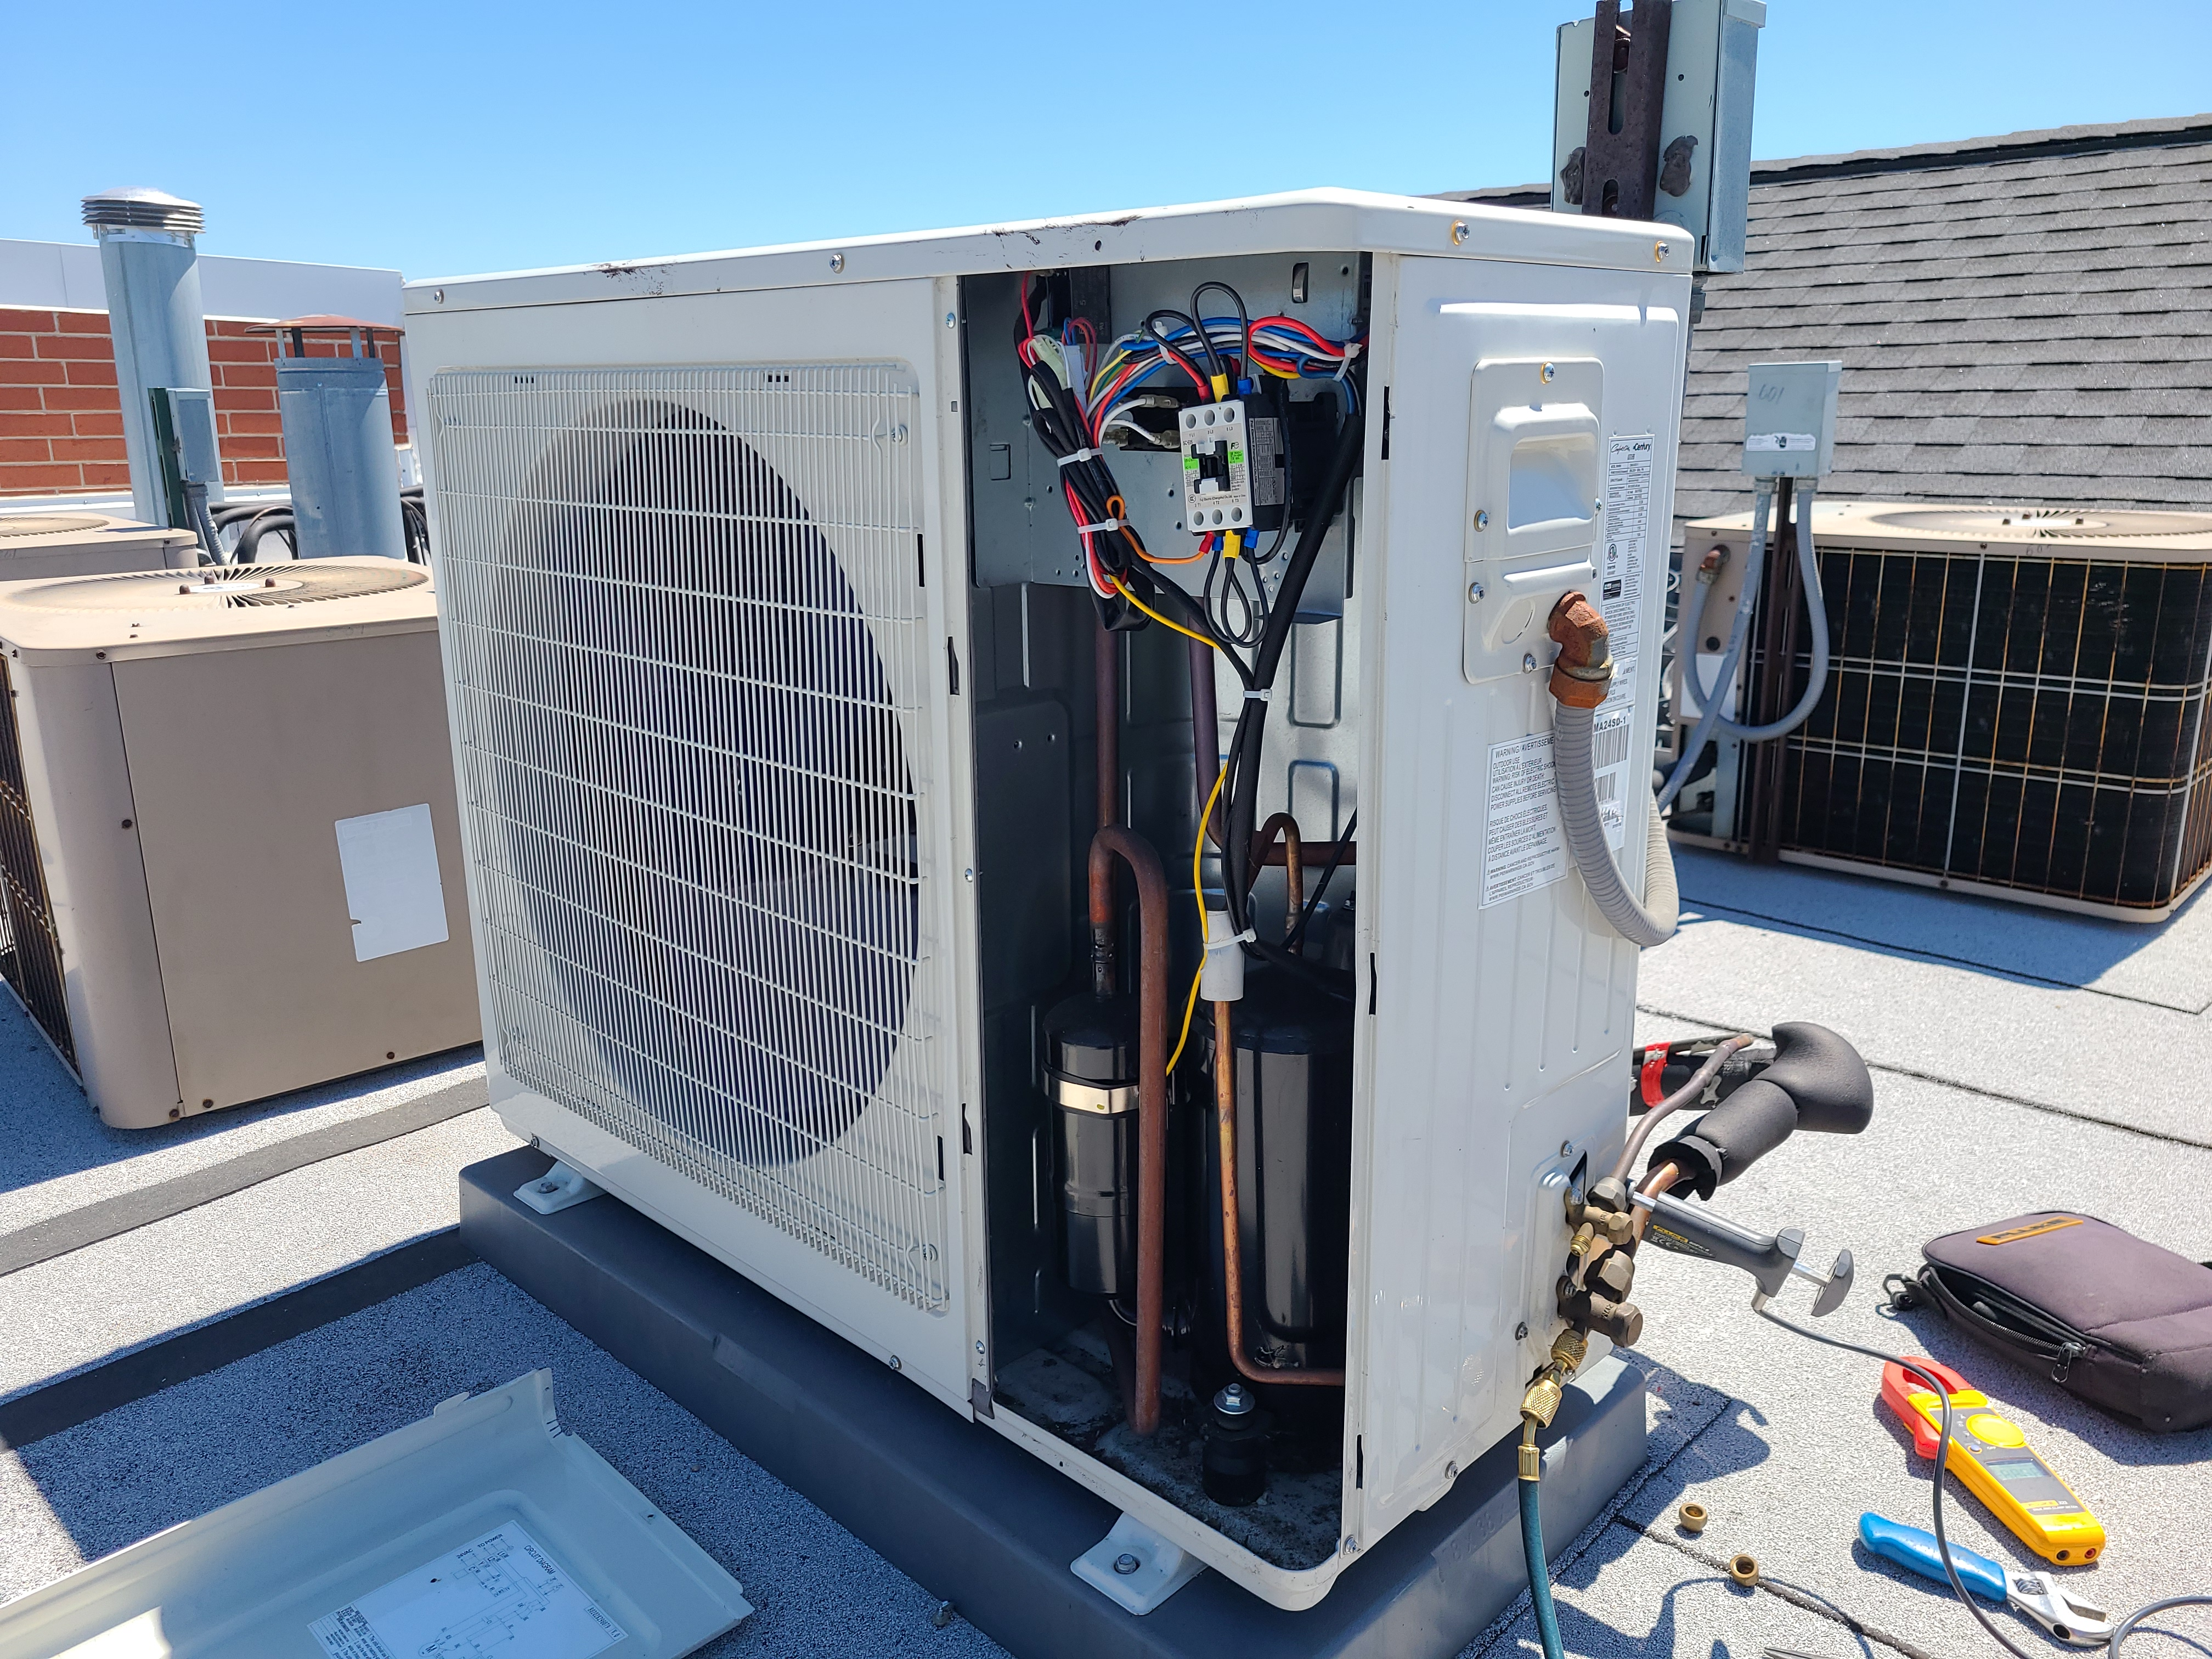 Comfort-aire ac spring tune up. System cleaned and checked and ready for summer.